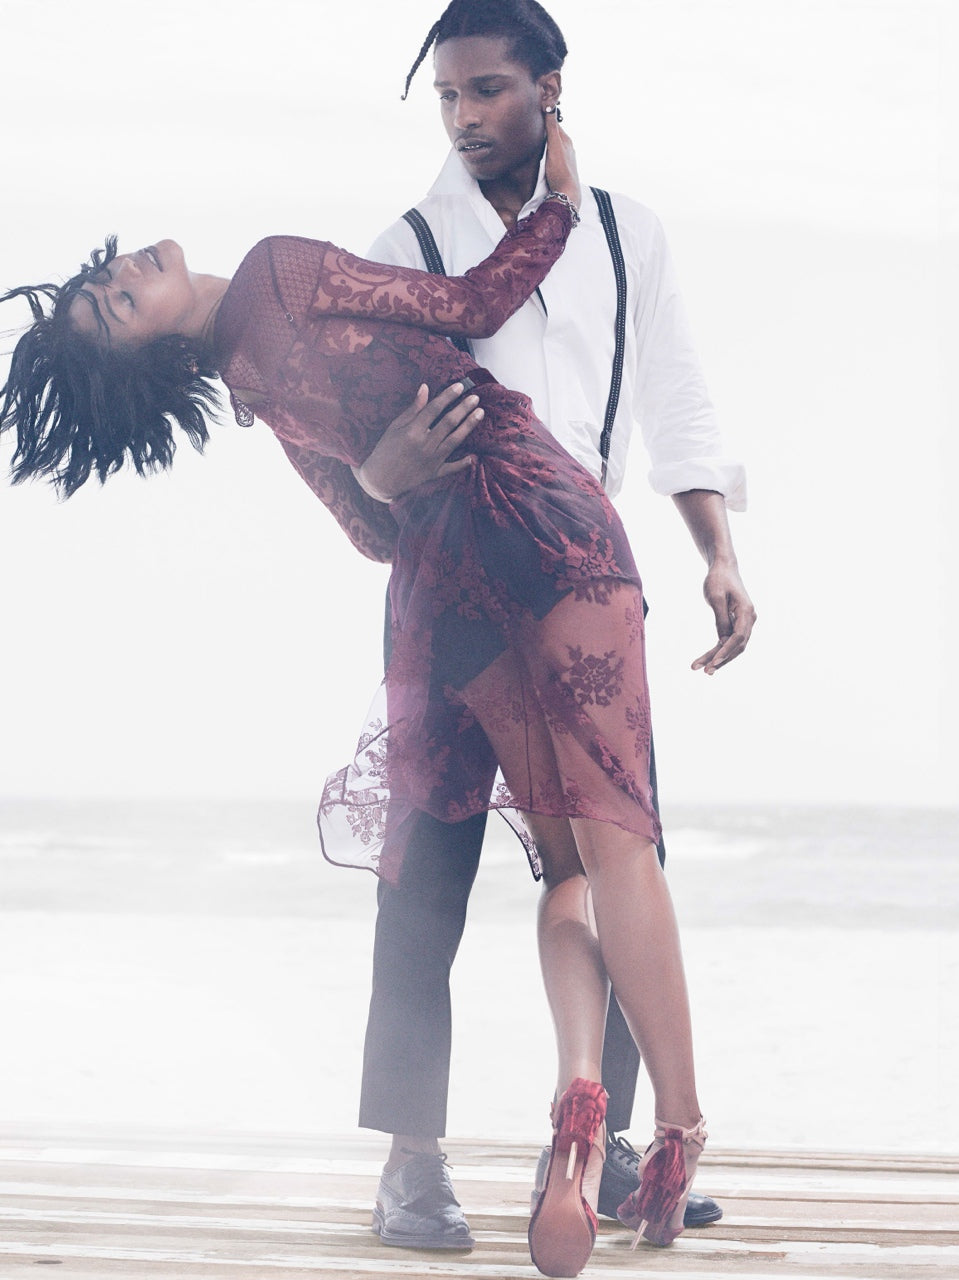 A$AP Rocky Chanel Iman Vogue Sept 2014 7